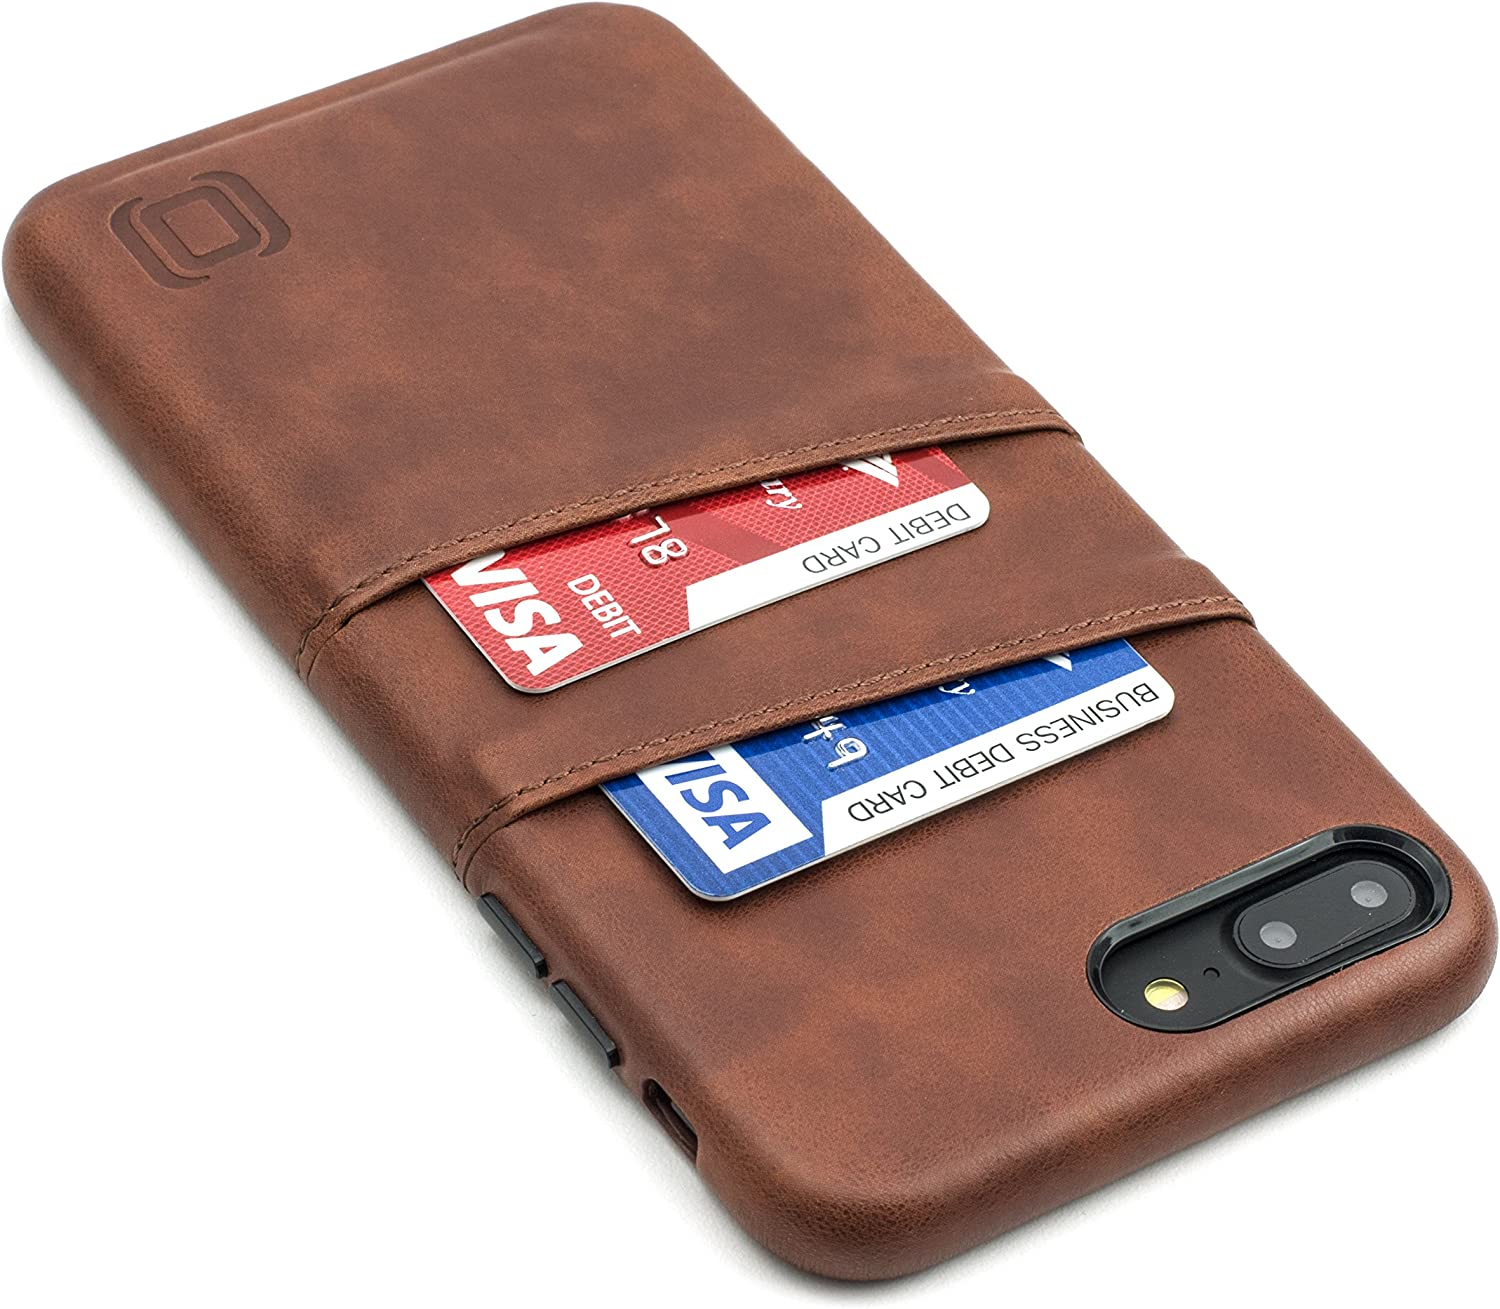 Dockem Exec Wallet Case for iPhone 8 Plus / 7 Plus - Slim Vintage Synthetic Leather Card Case with 2 Card/ID Holder Slots: Simple, Professional, Executive Snap On Cover [Brown]